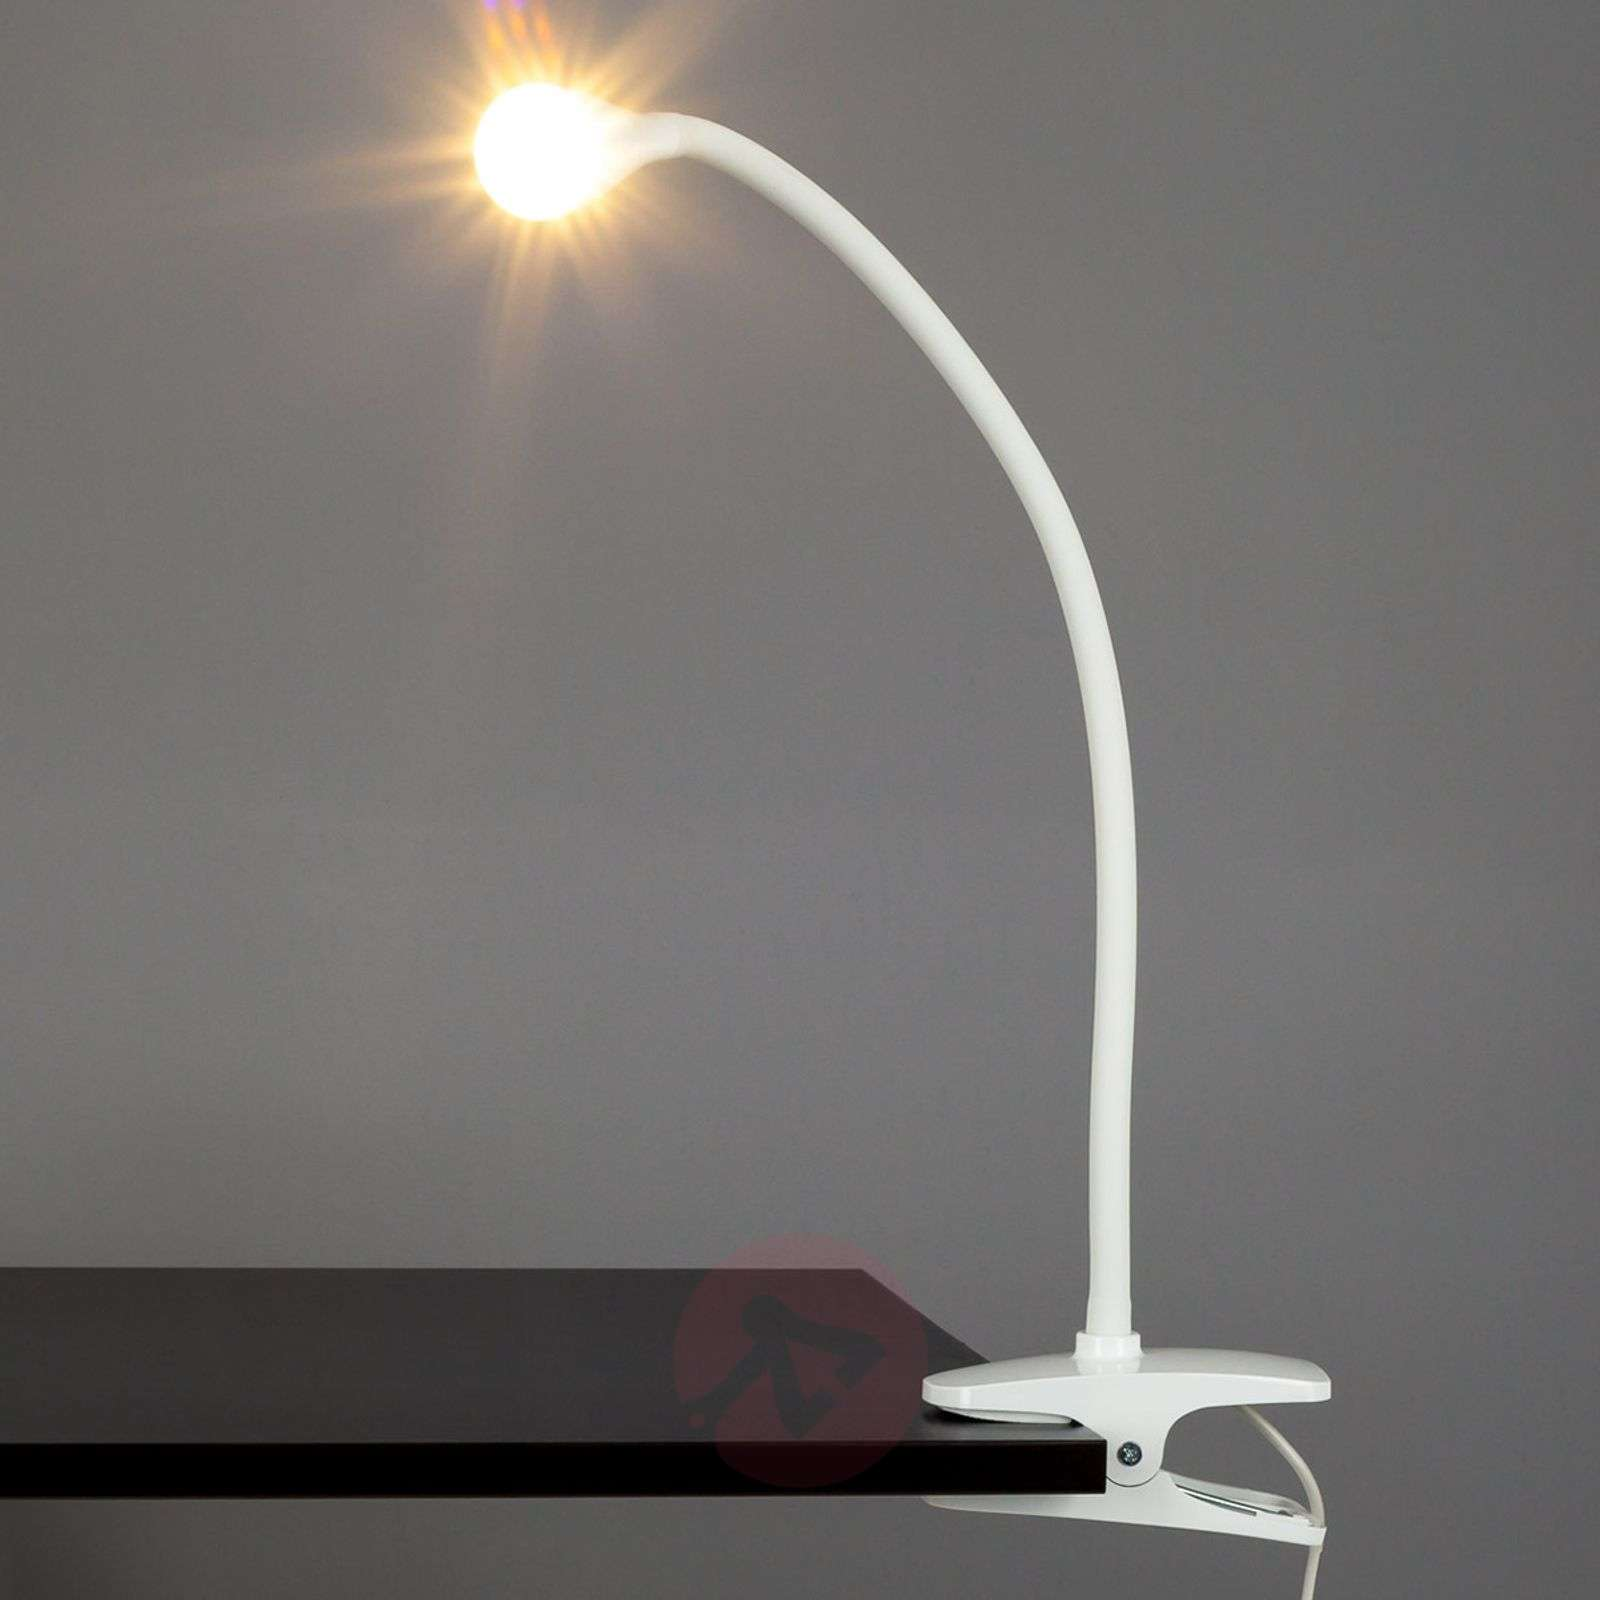 Baris, Narrow LED Clip-on Lamp in White-9643006-01